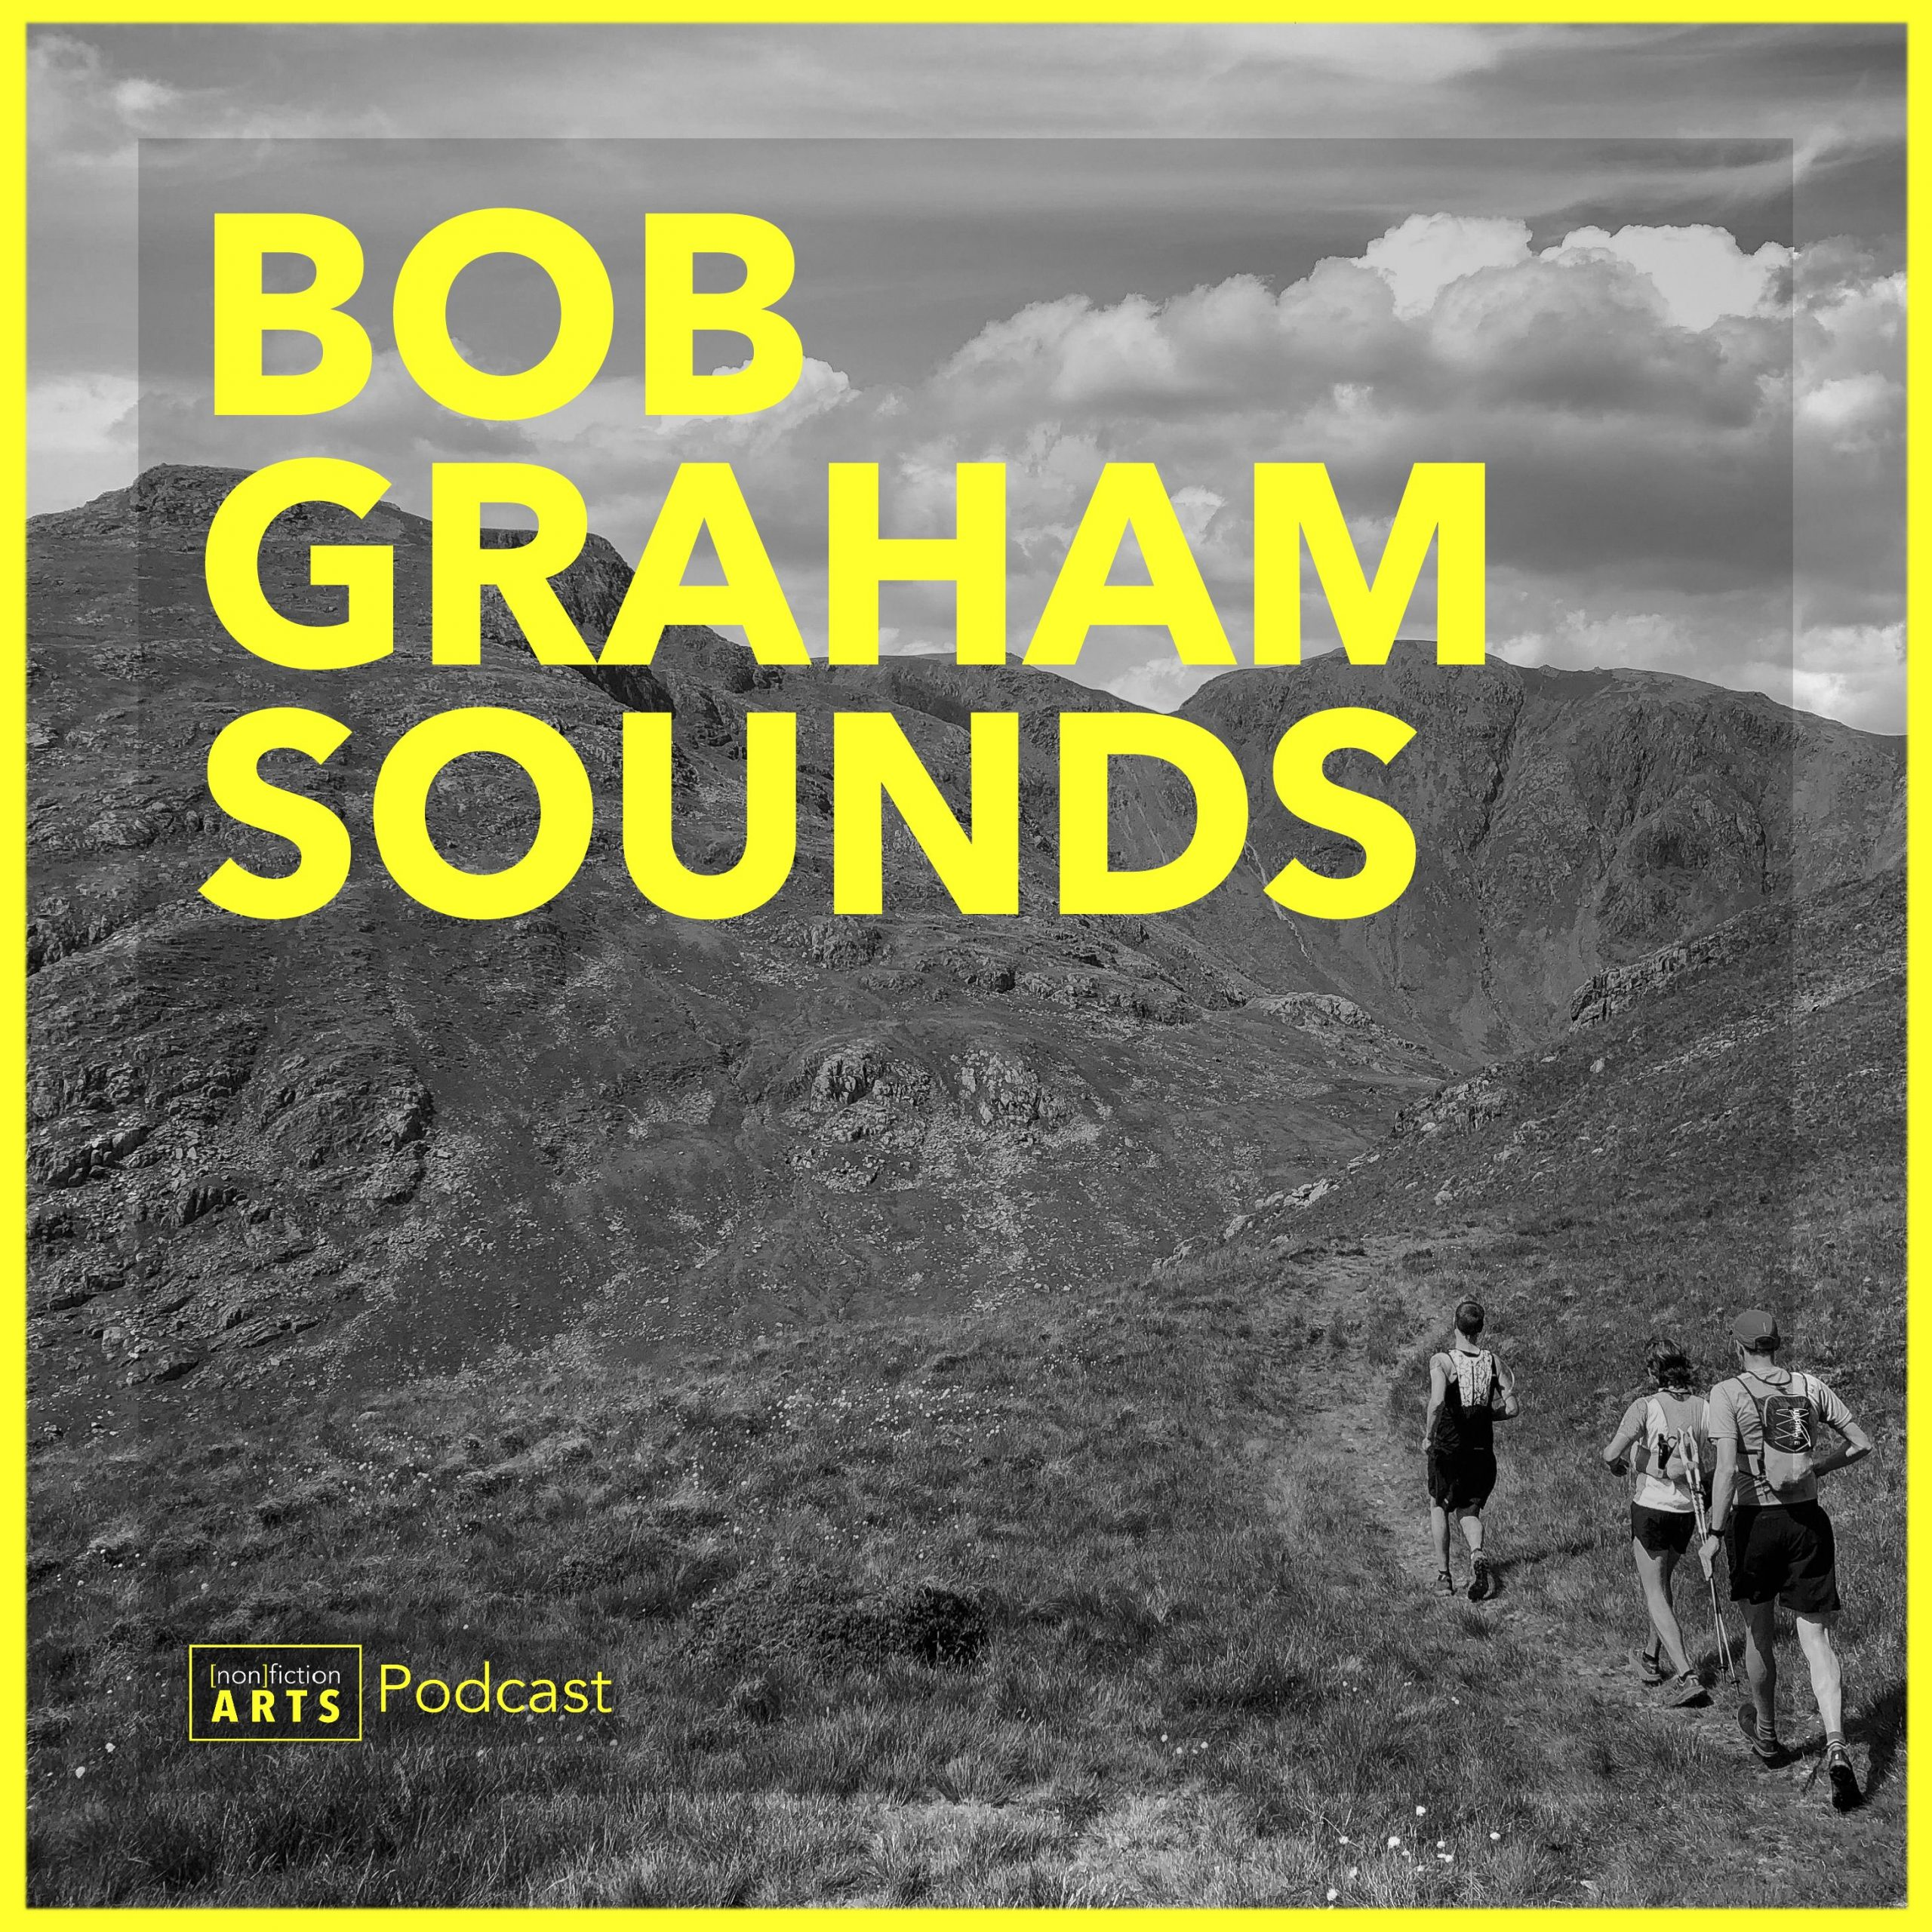 Bob Graham Sounds